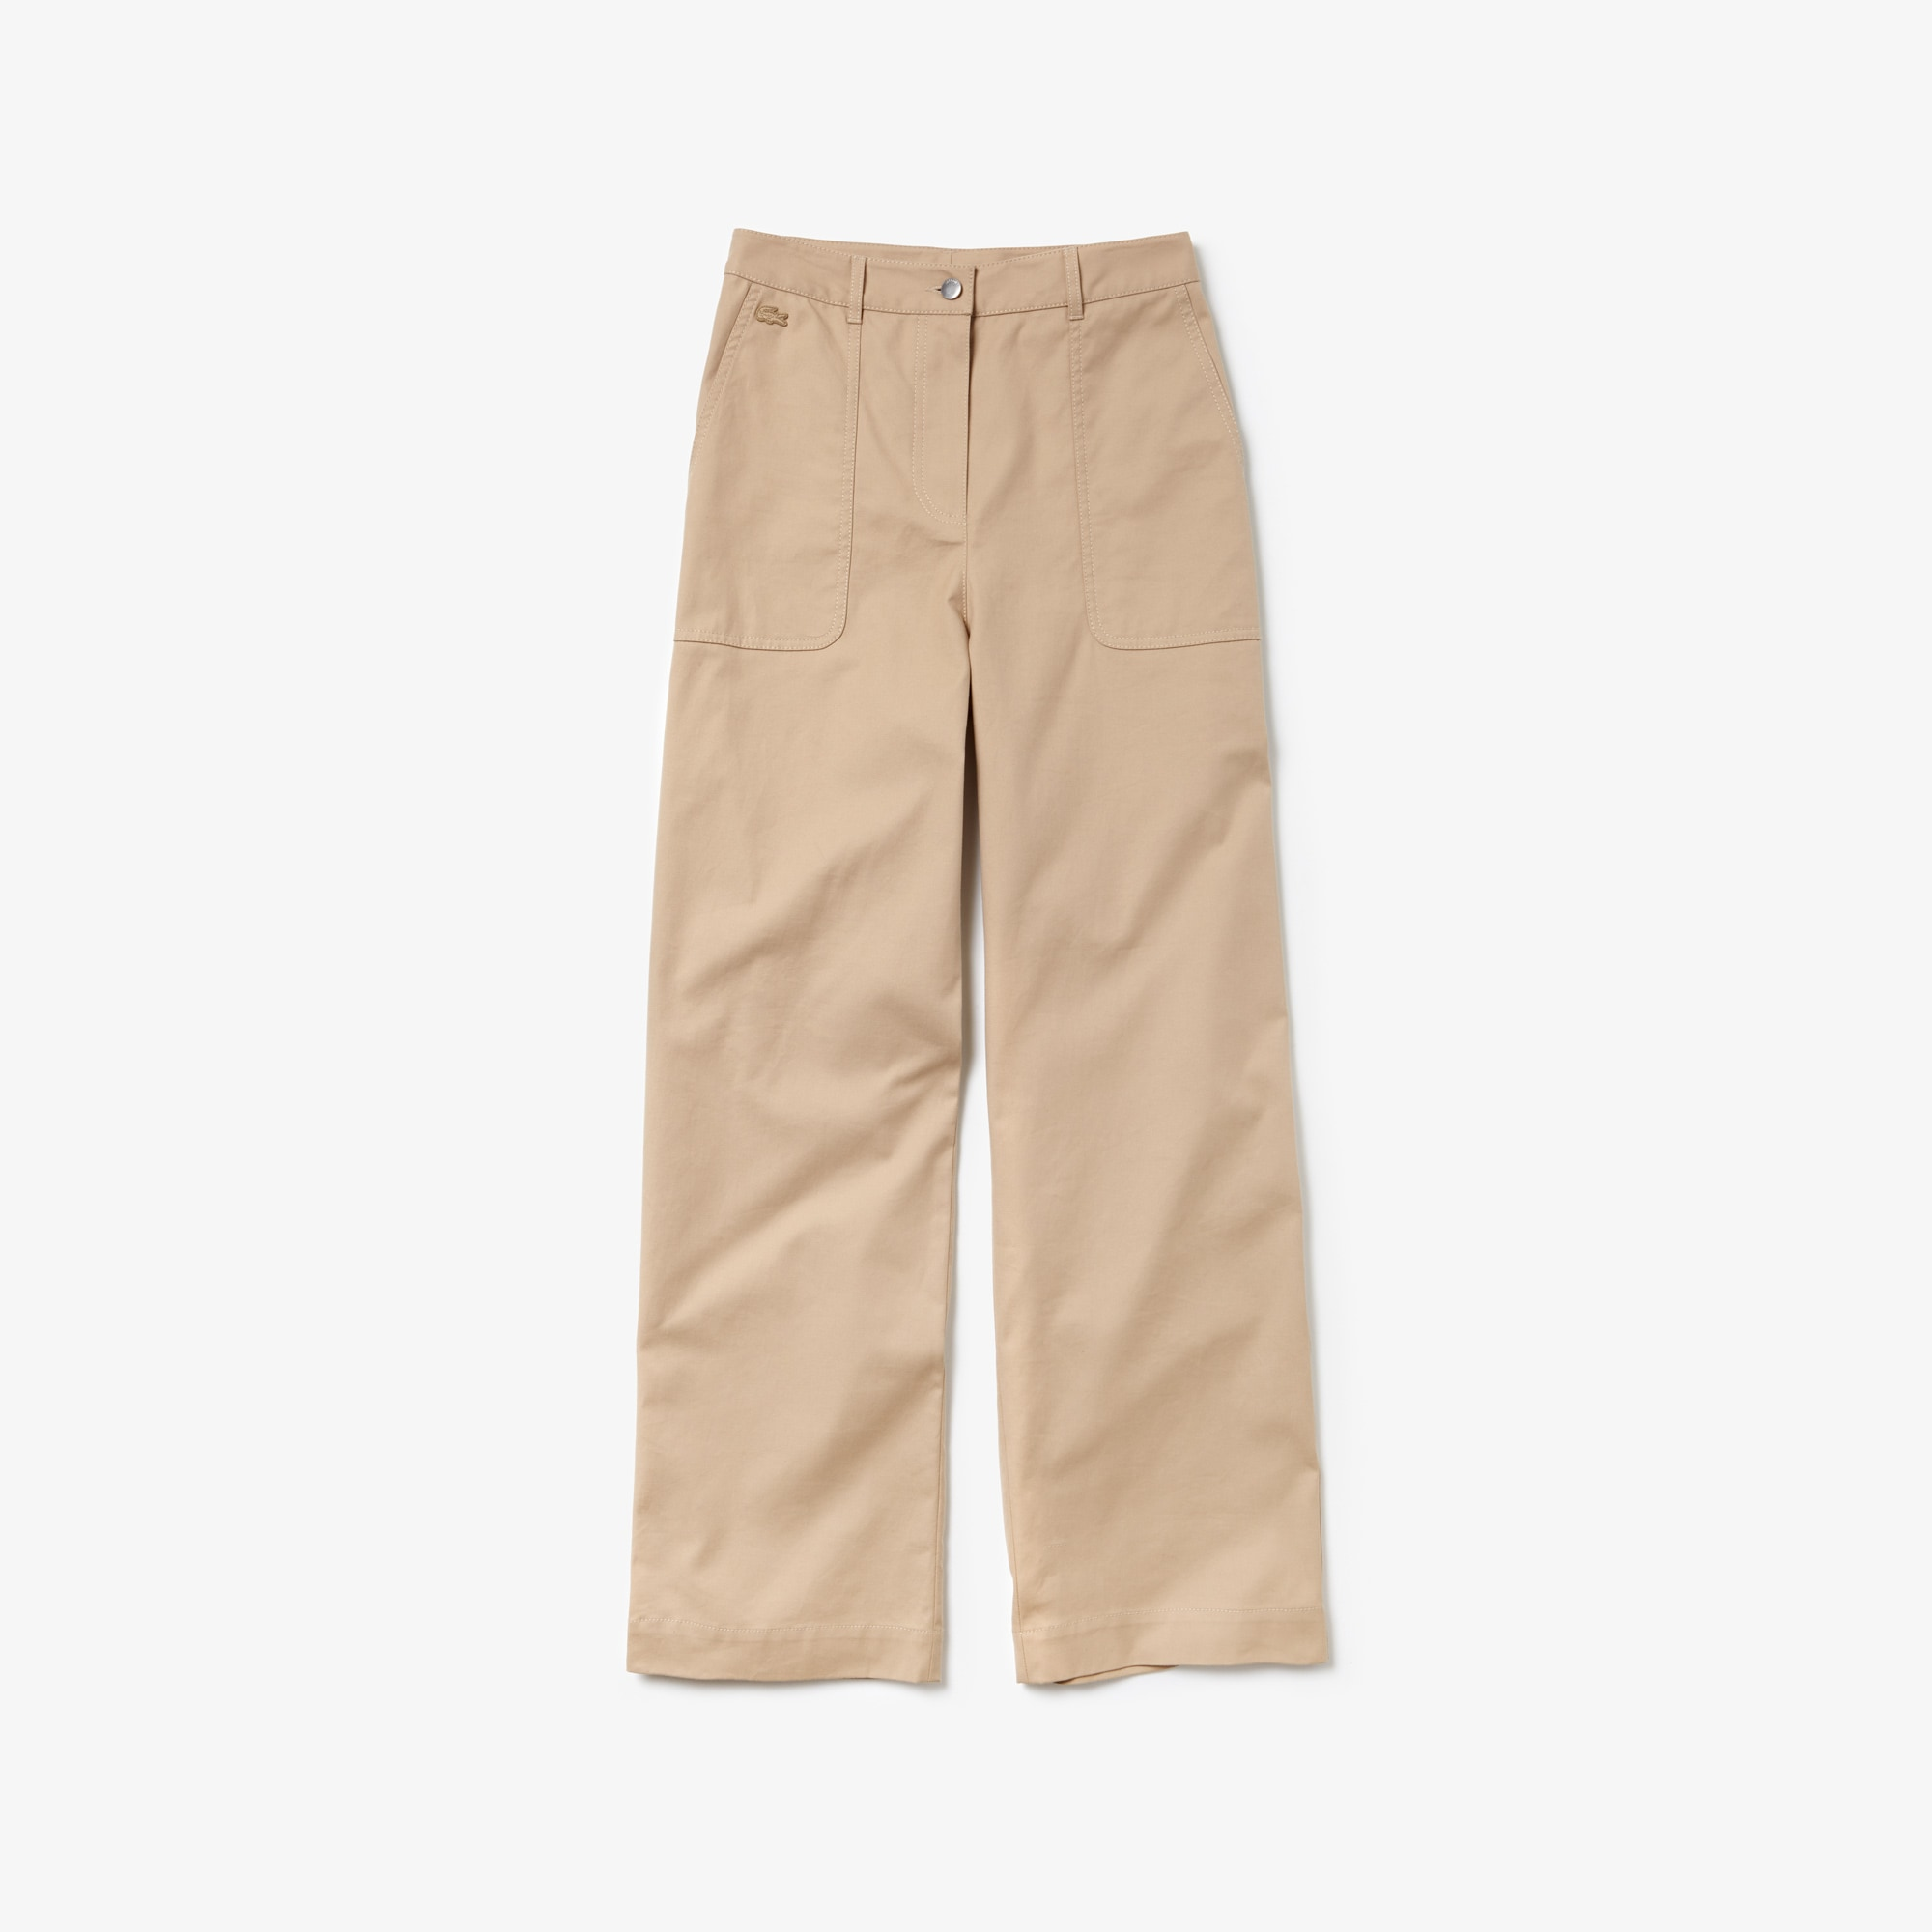 Women's Texturized Cotton Pleated Carrot Pants